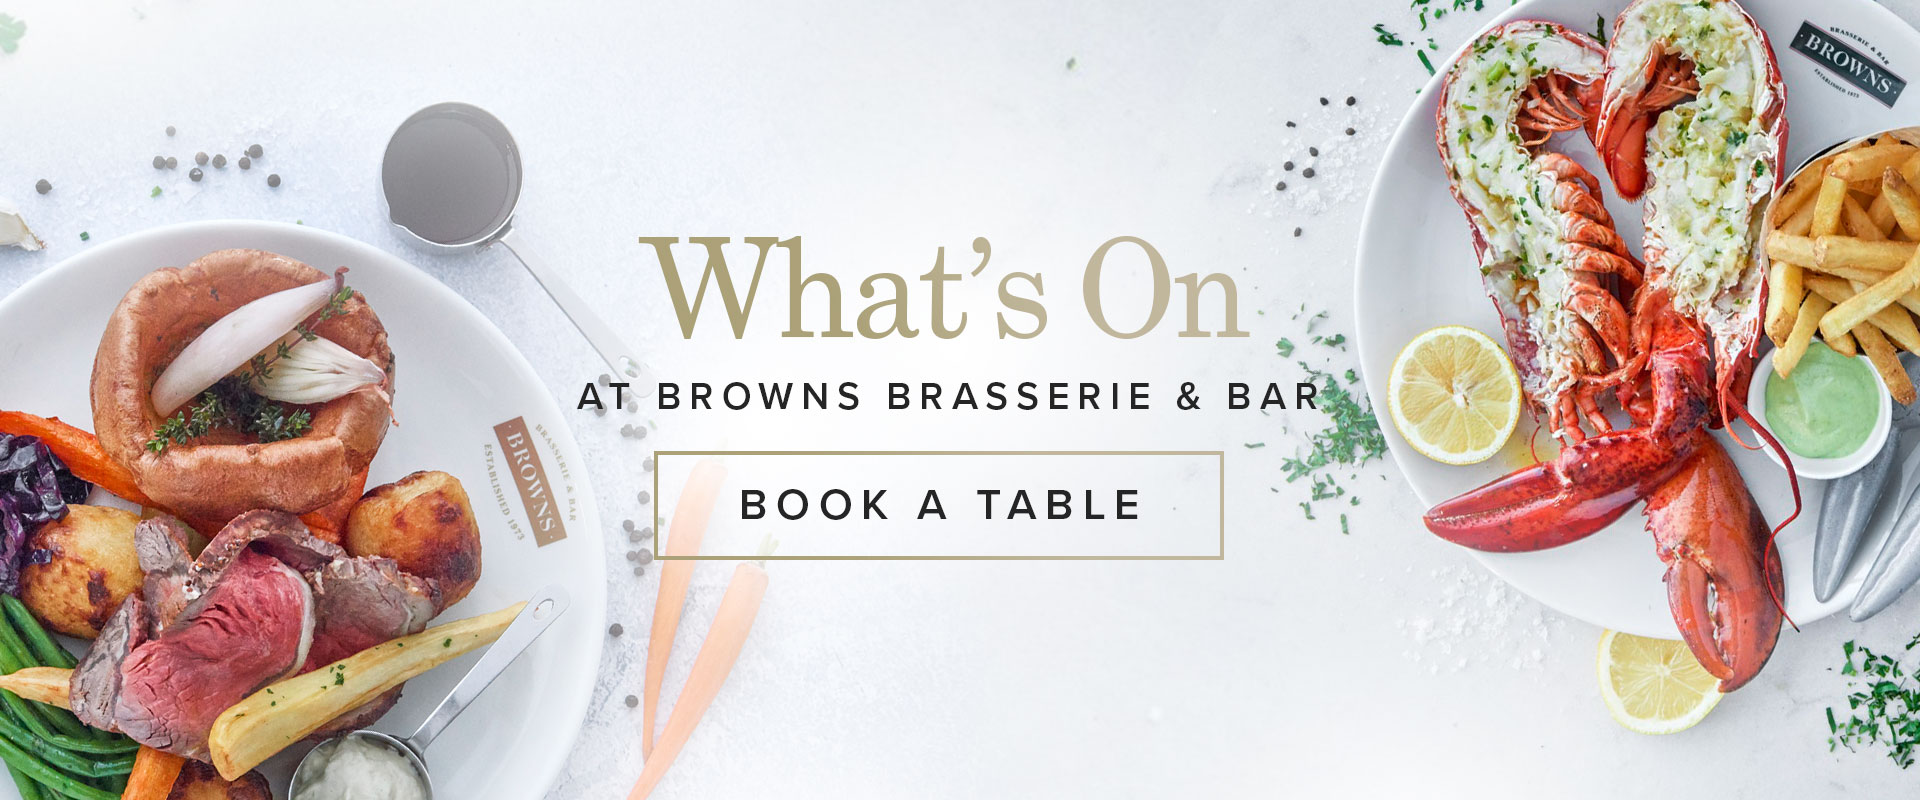 What's on at Browns Cambridge